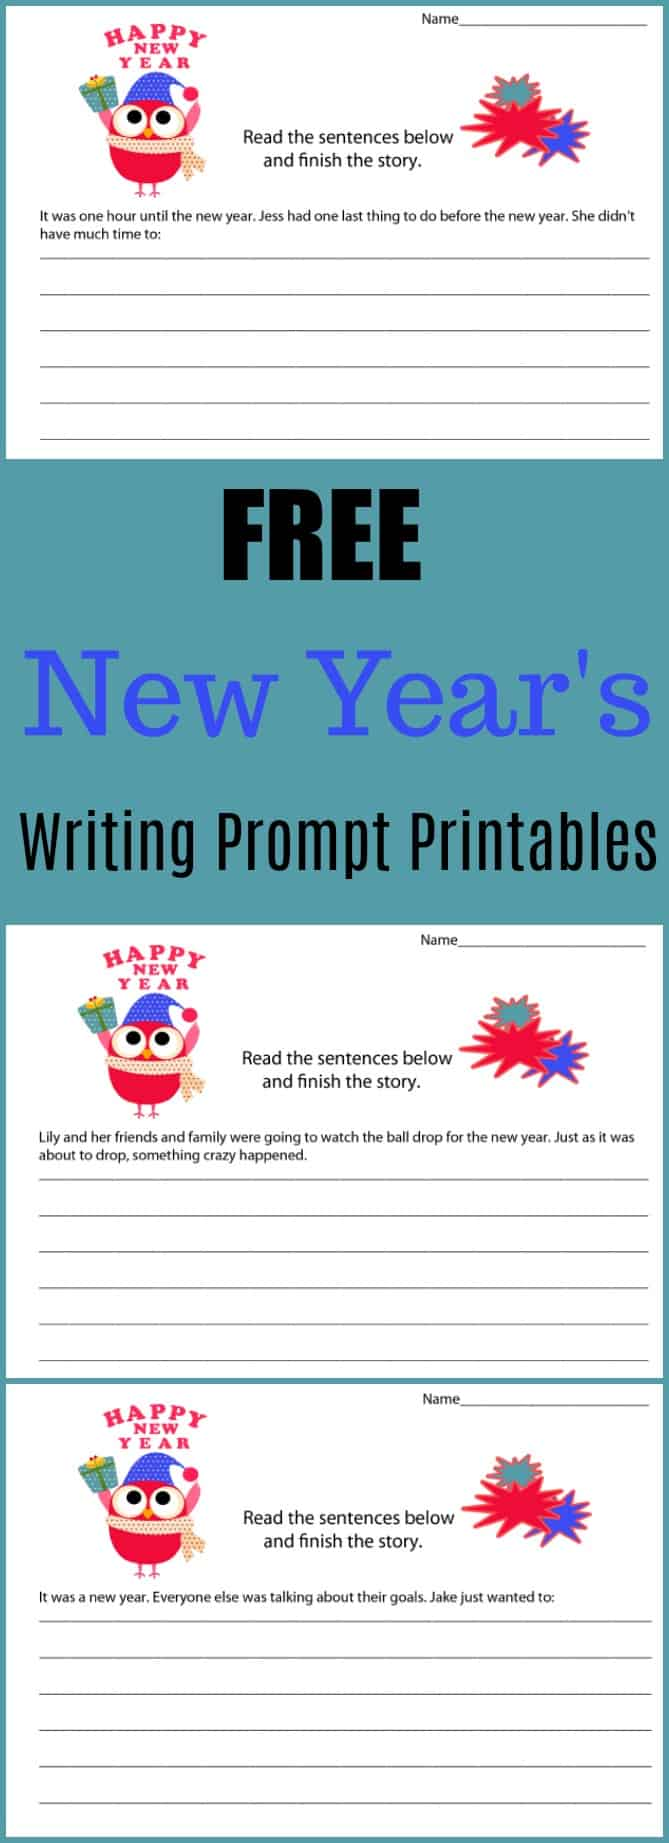 Holiday Writing Prompt Printable Pack - 80 Pages of Free Printables